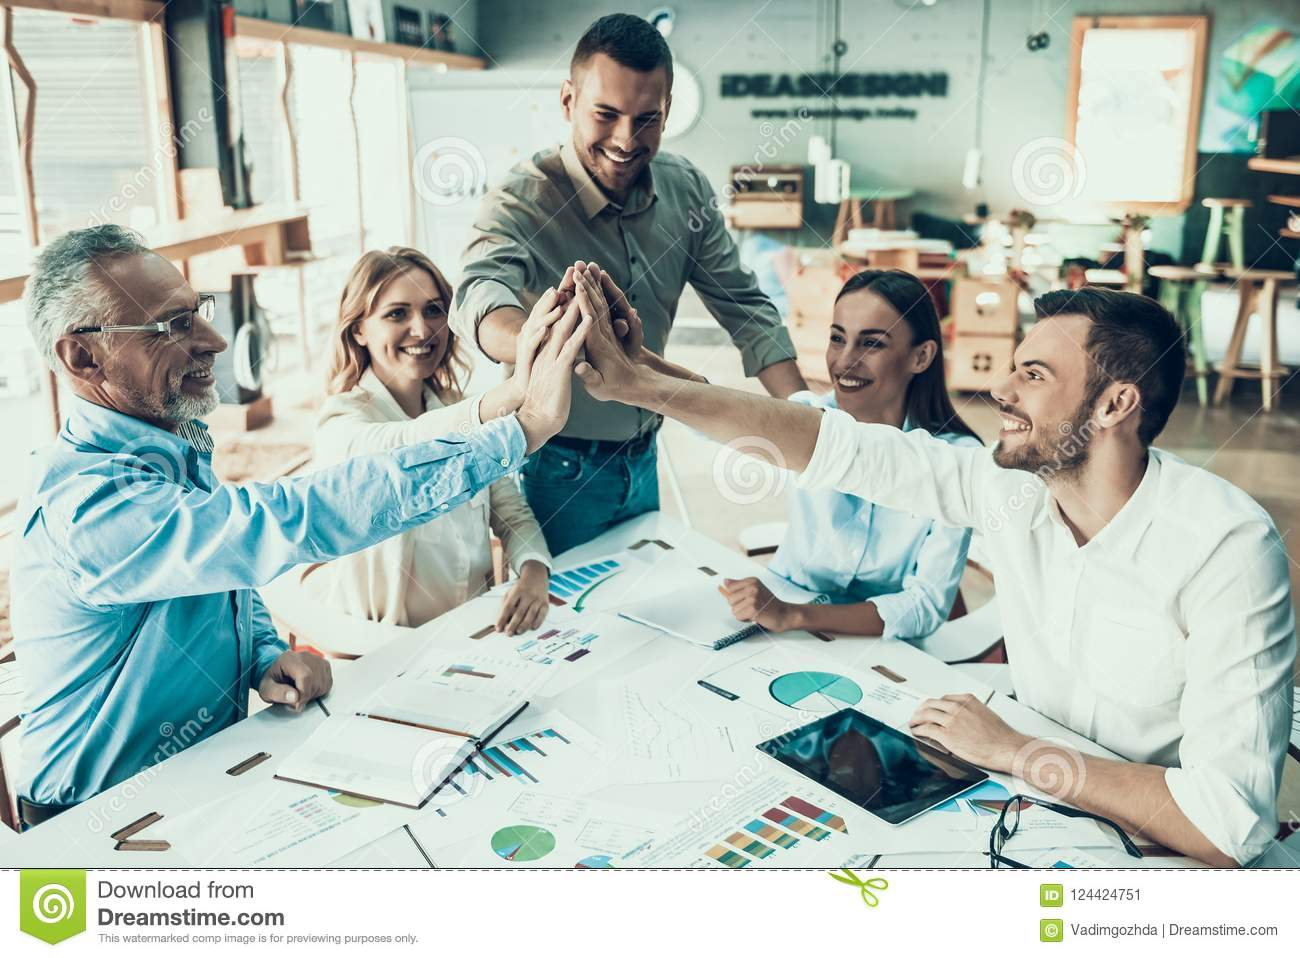 Business People at Work in Office Teamwork Concept